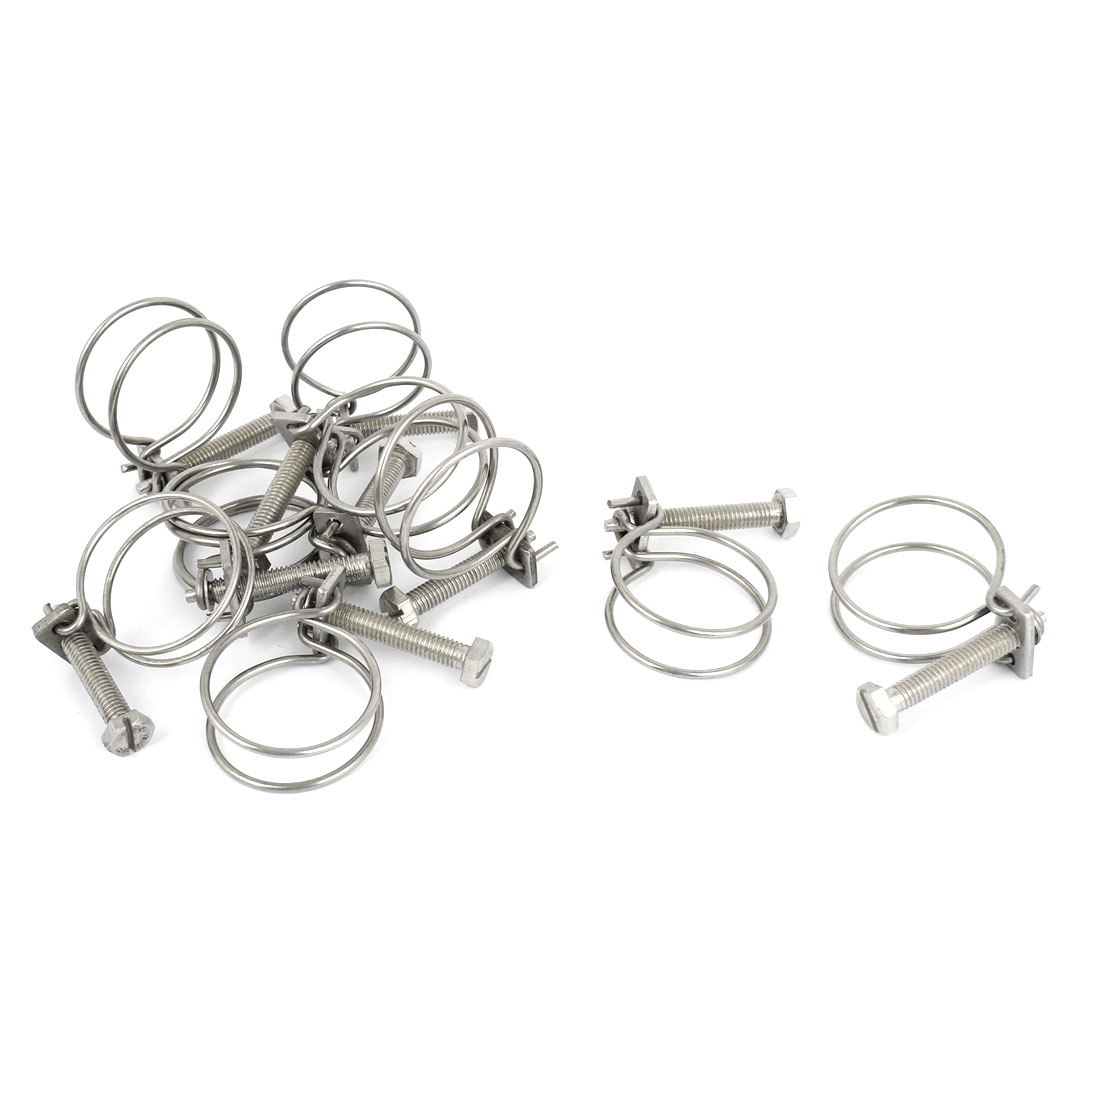 10 Pcs 32mmx2mm Adjustable Dual Steel Wire Water Tube Hose Clamps Clips